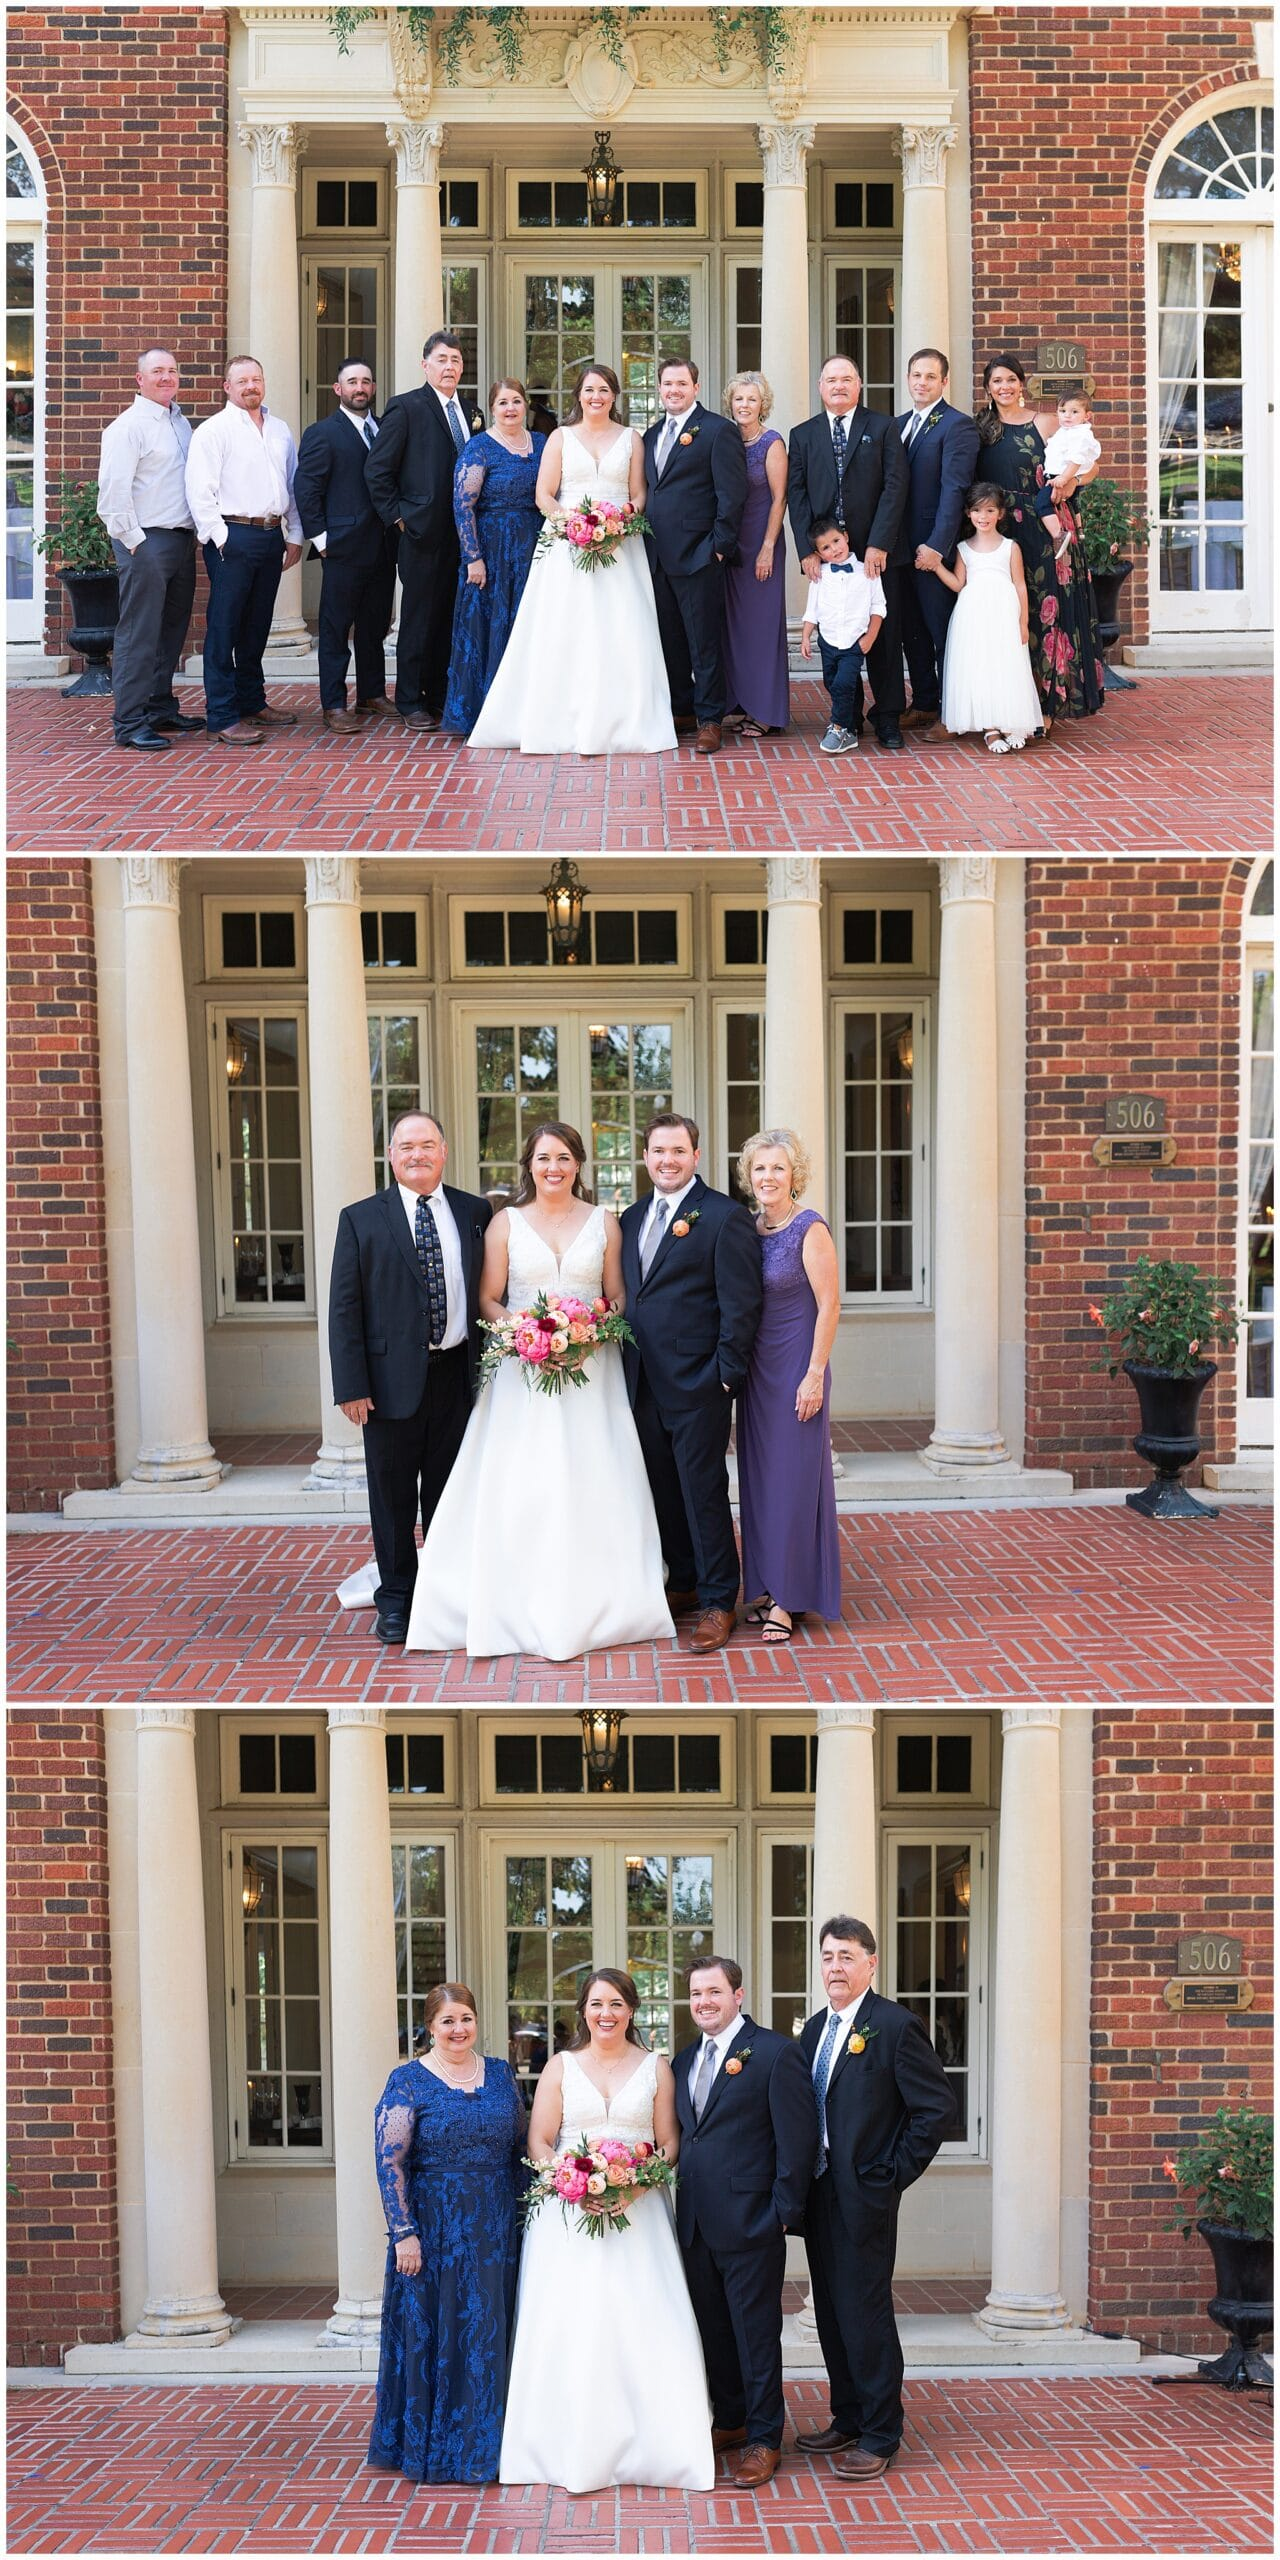 family portraits after wedding ceremony at Astin Mansion in Bryan Texas by Swish and Click Photography